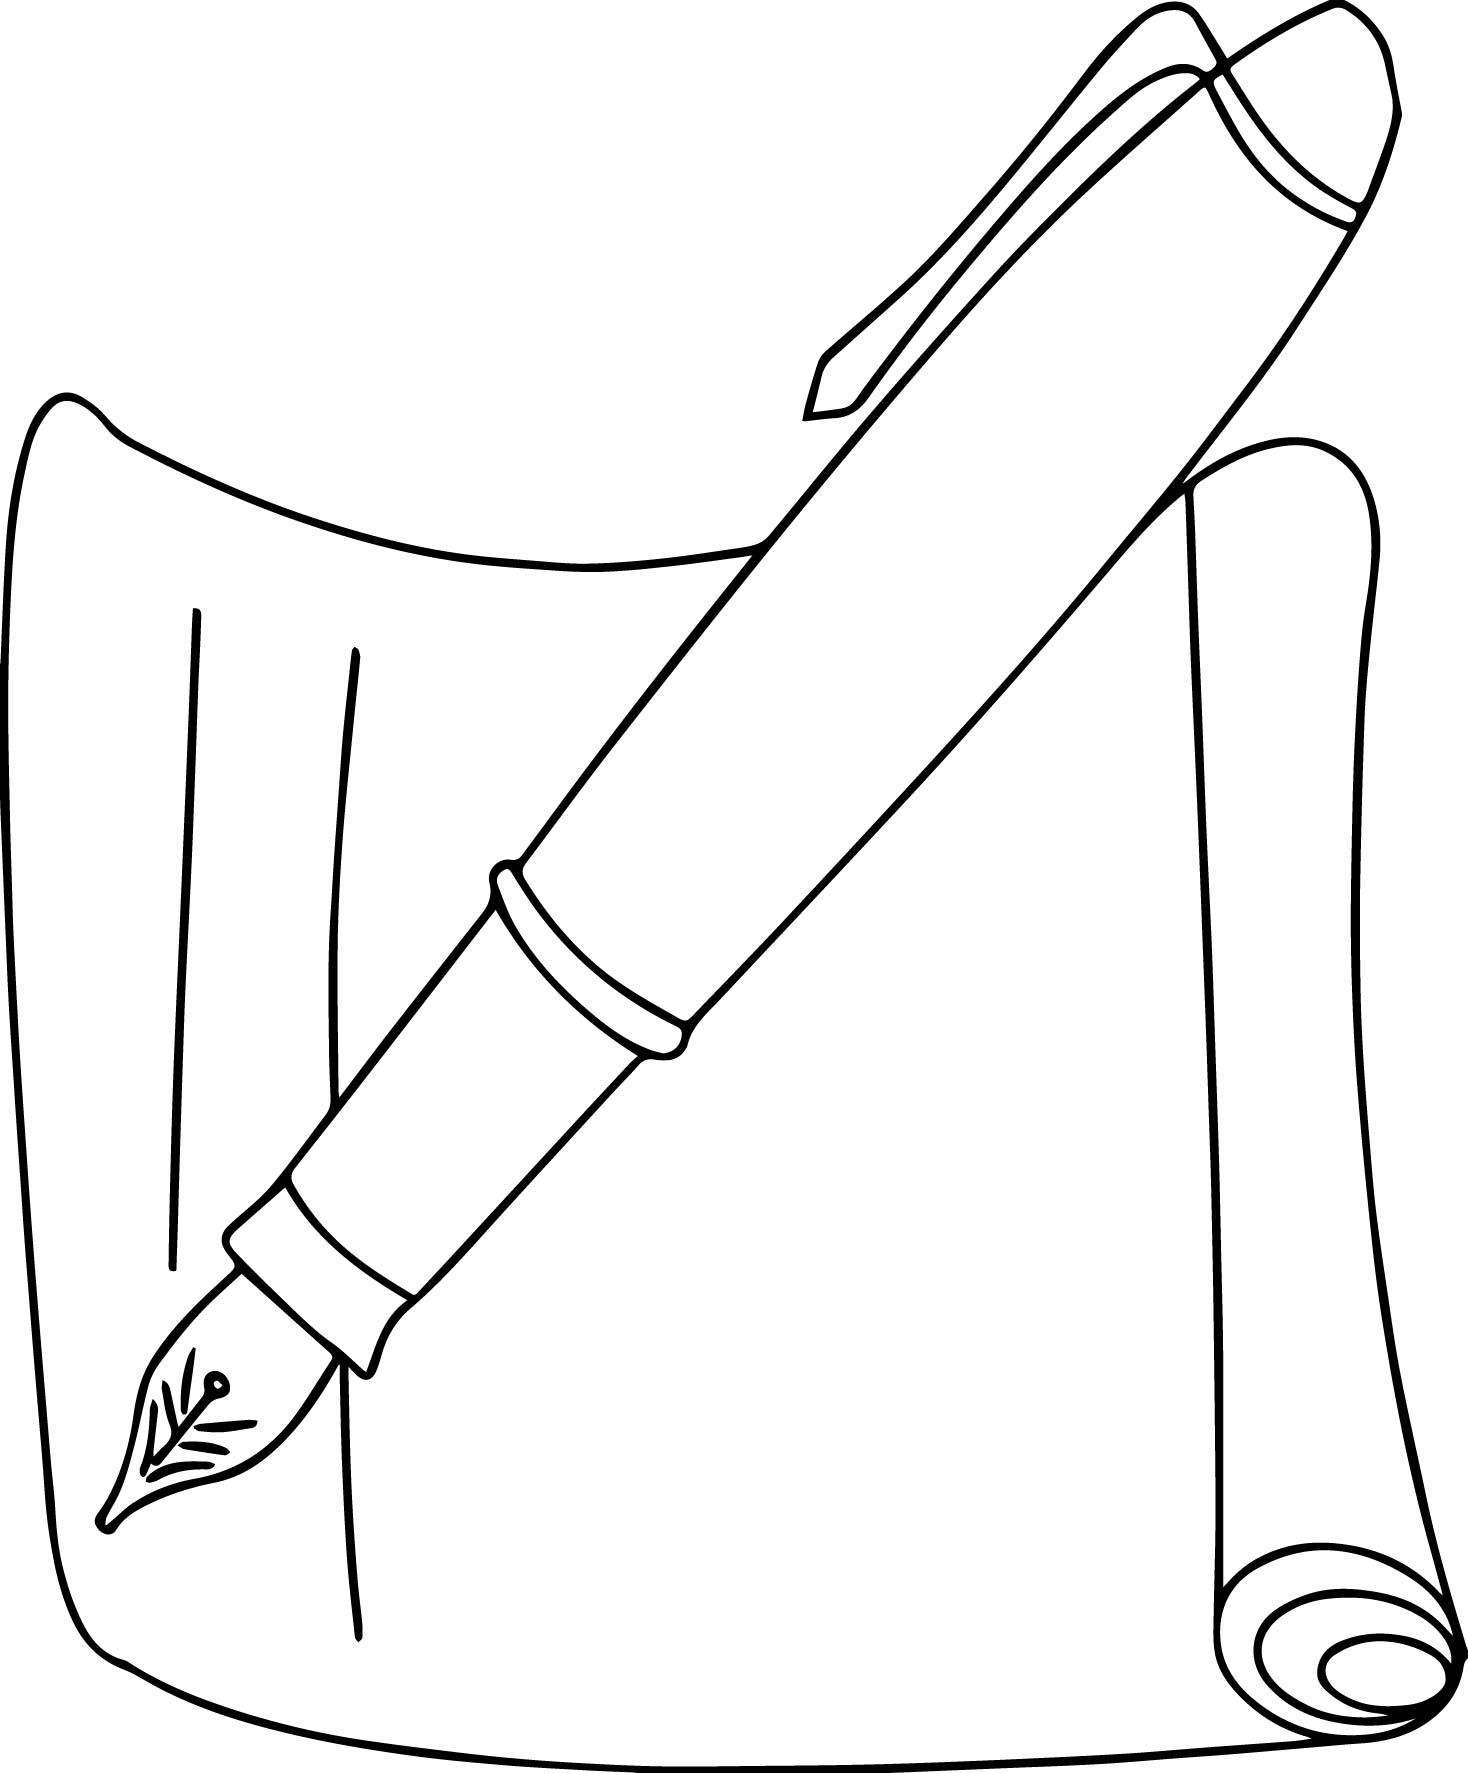 calligraphy pen and paper coloring page wecoloringpage